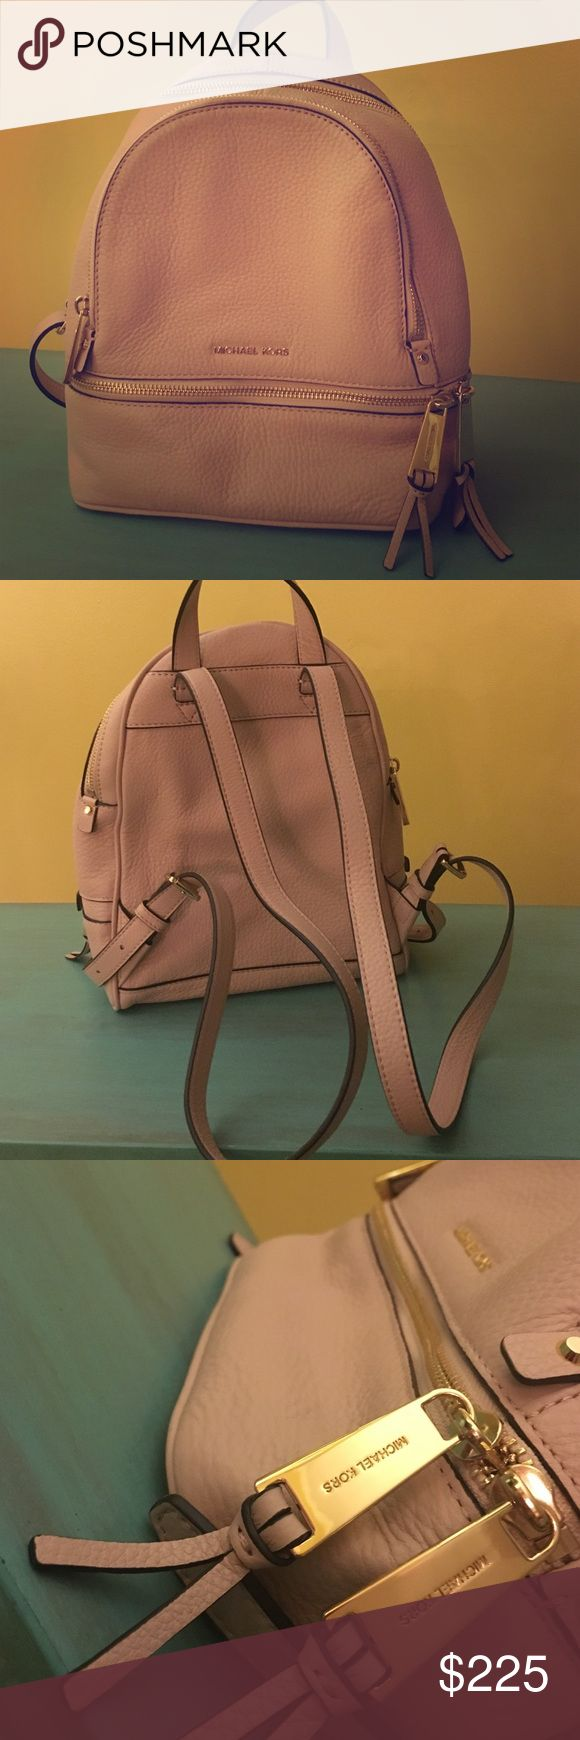 Michael Kors Rhea Backpack Purse! NWOT NWOT MK beautiful dusty rose backpack purse. Perfect condition! Never used. Adjustable straps, Super cute small sized bag!  MICHAEL Michael Kors Bags